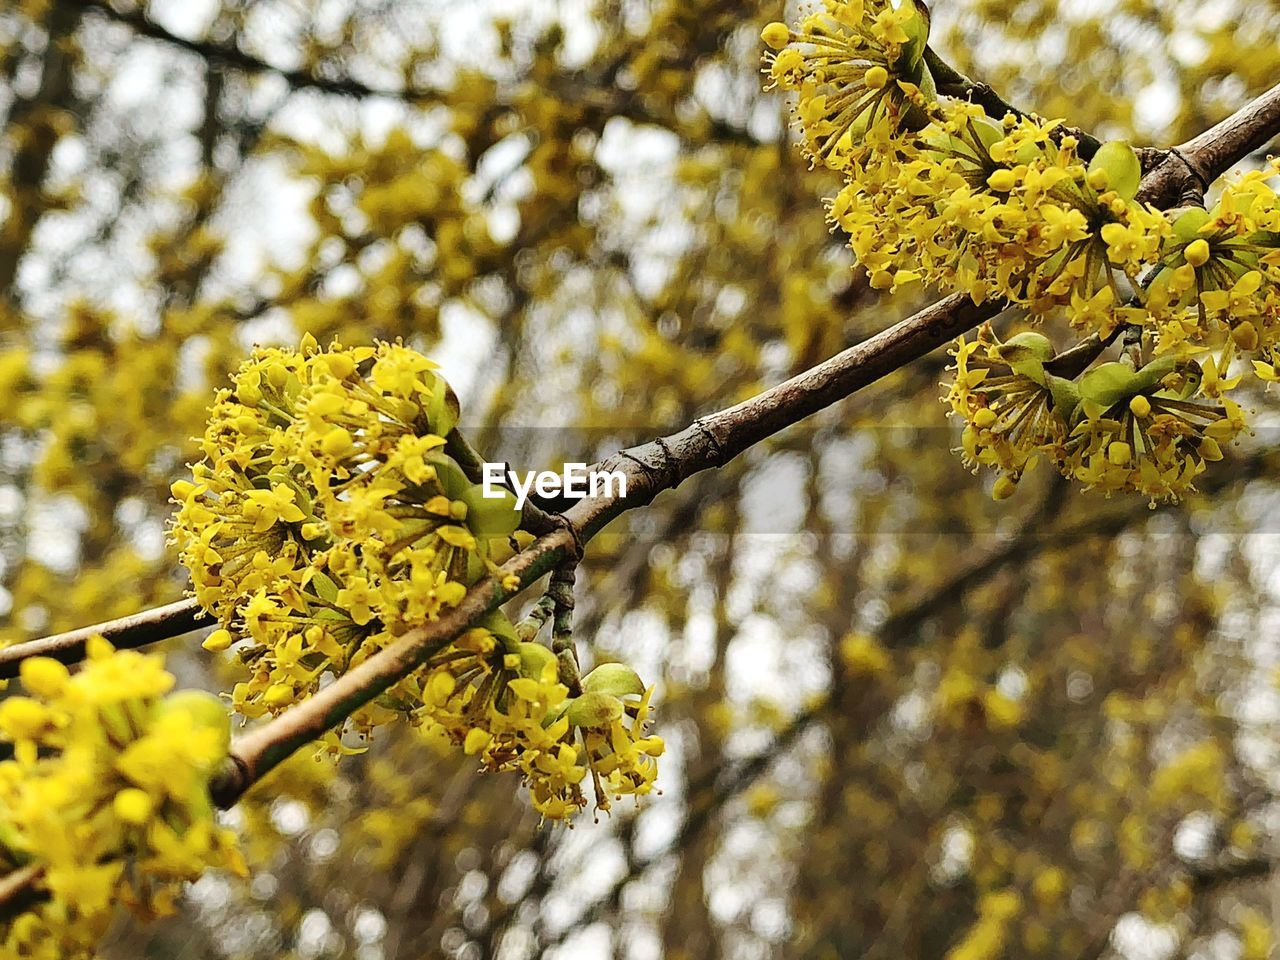 plant, yellow, tree, flower, growth, flowering plant, beauty in nature, branch, focus on foreground, fragility, nature, freshness, day, low angle view, vulnerability, no people, close-up, tranquility, blossom, springtime, outdoors, flower head, spring, lichen